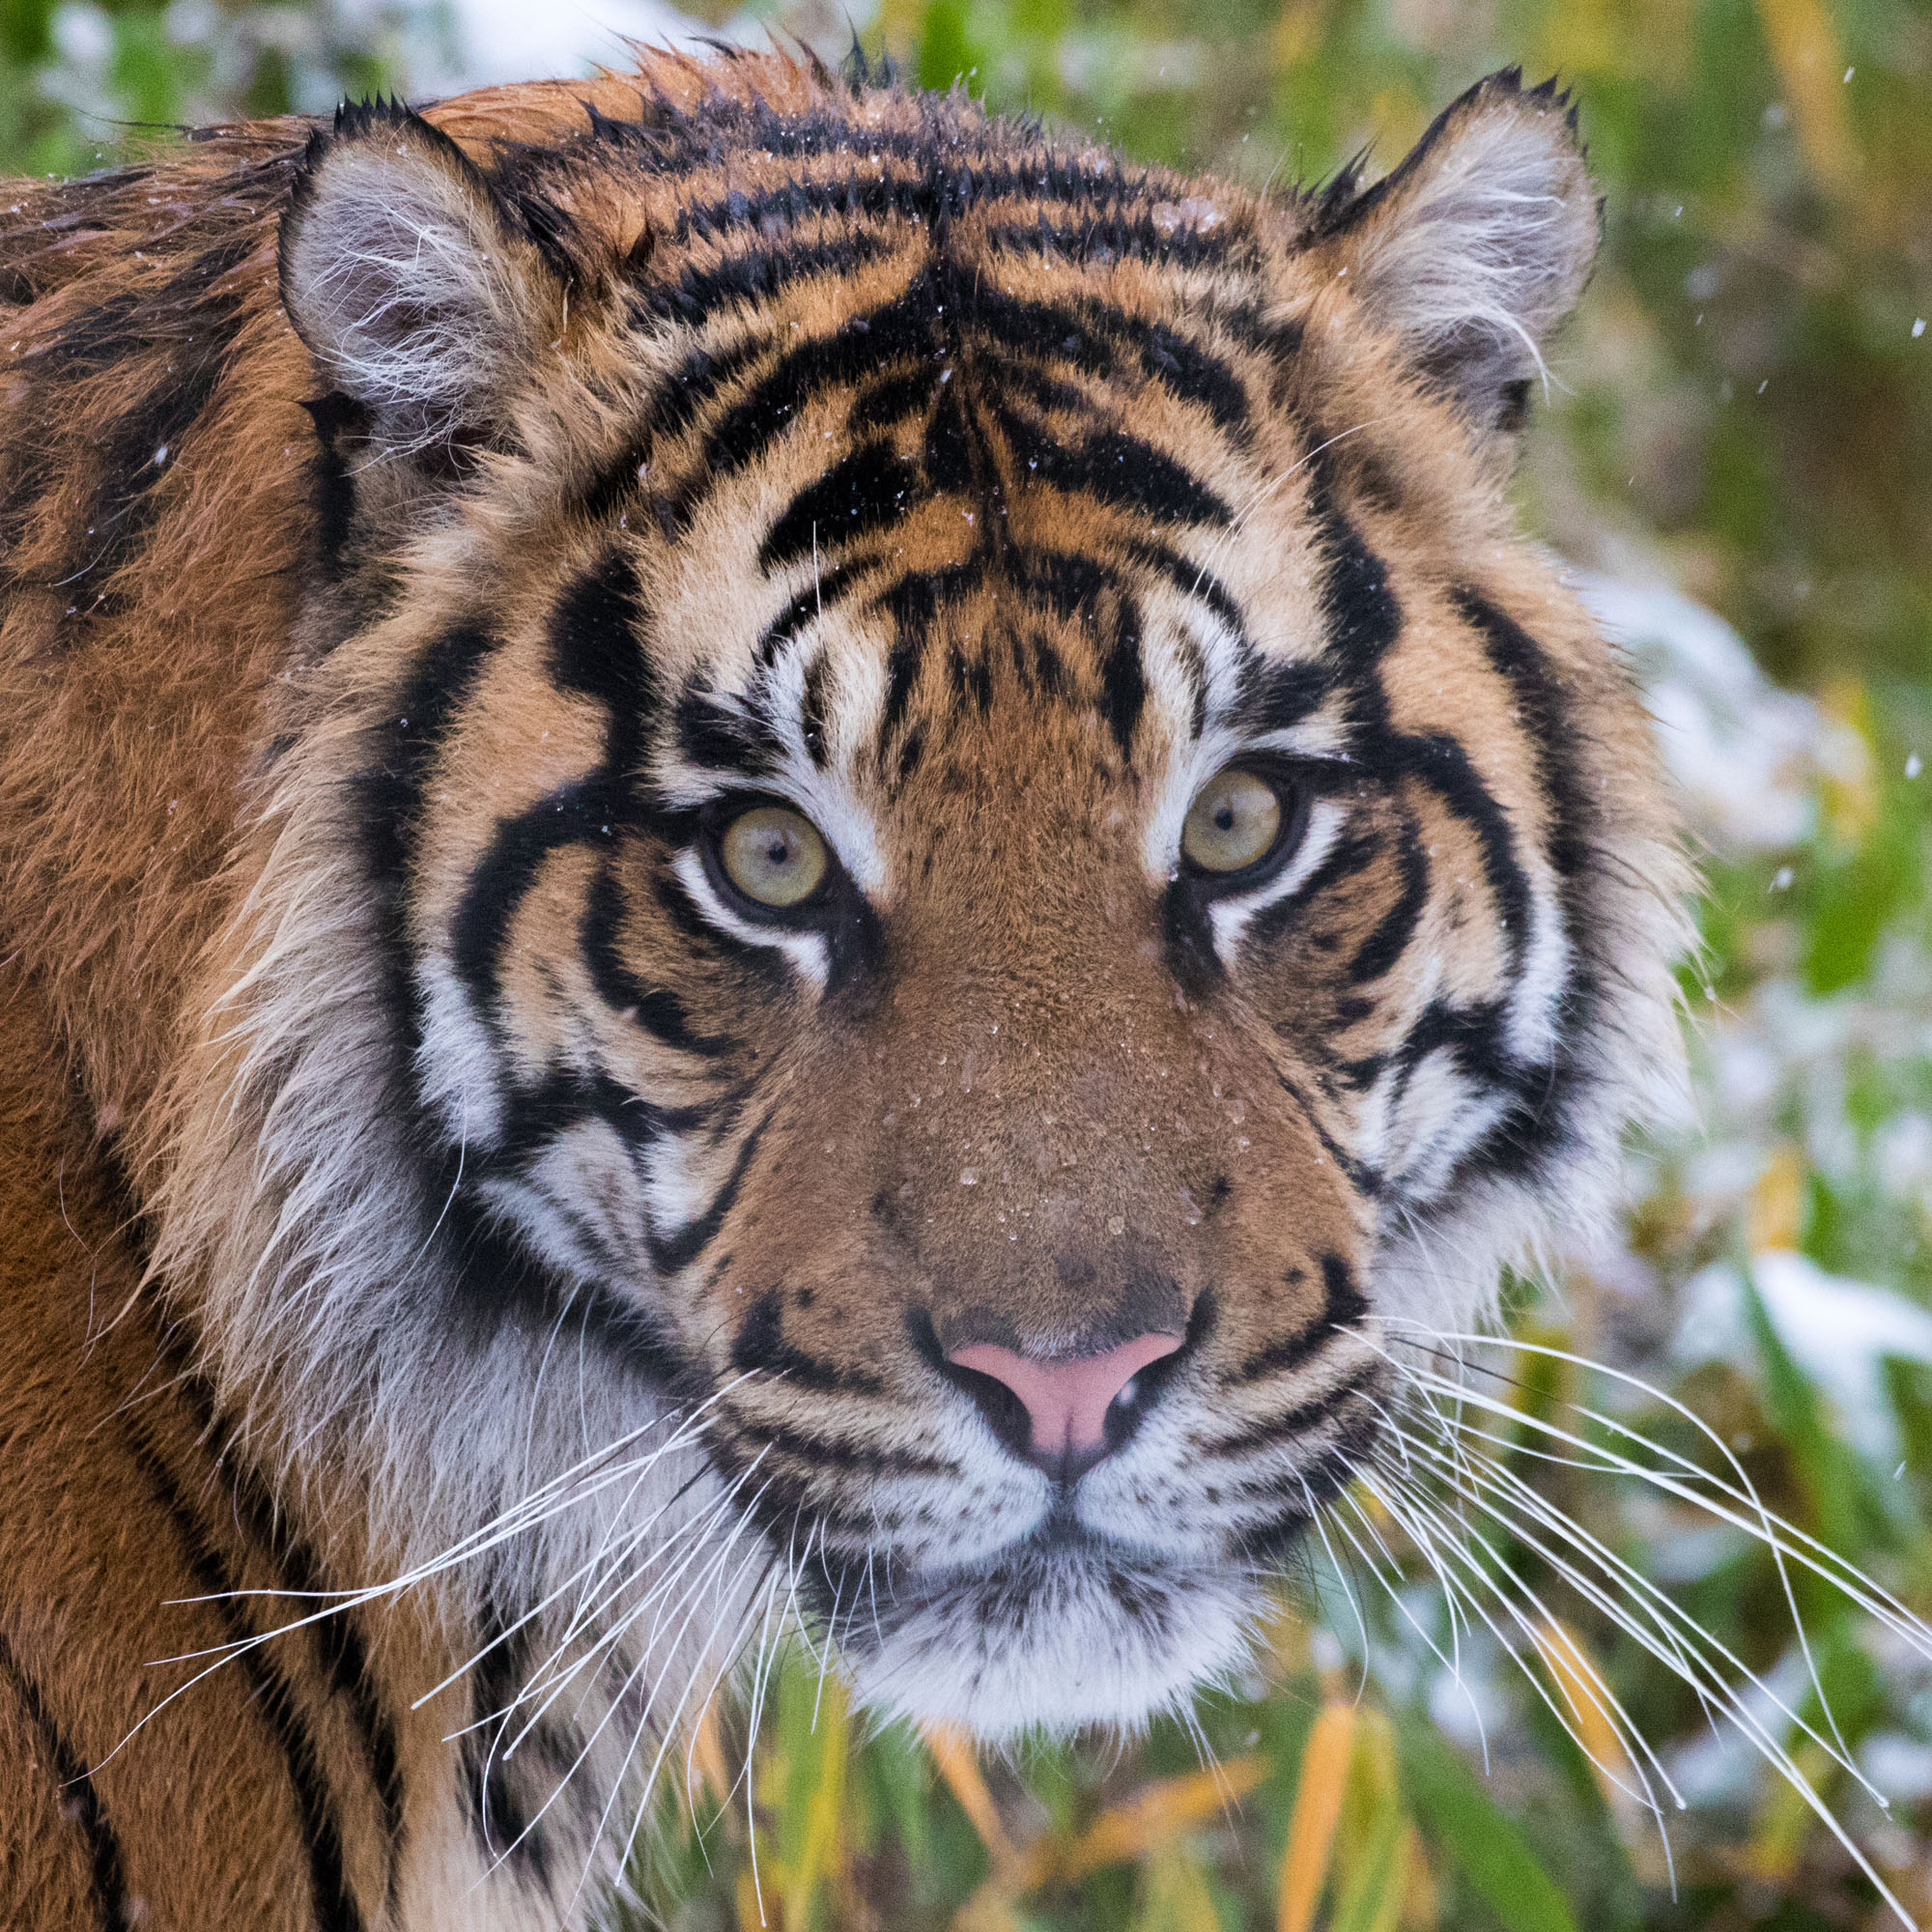 Adopt the Tigers | ZSL Shop